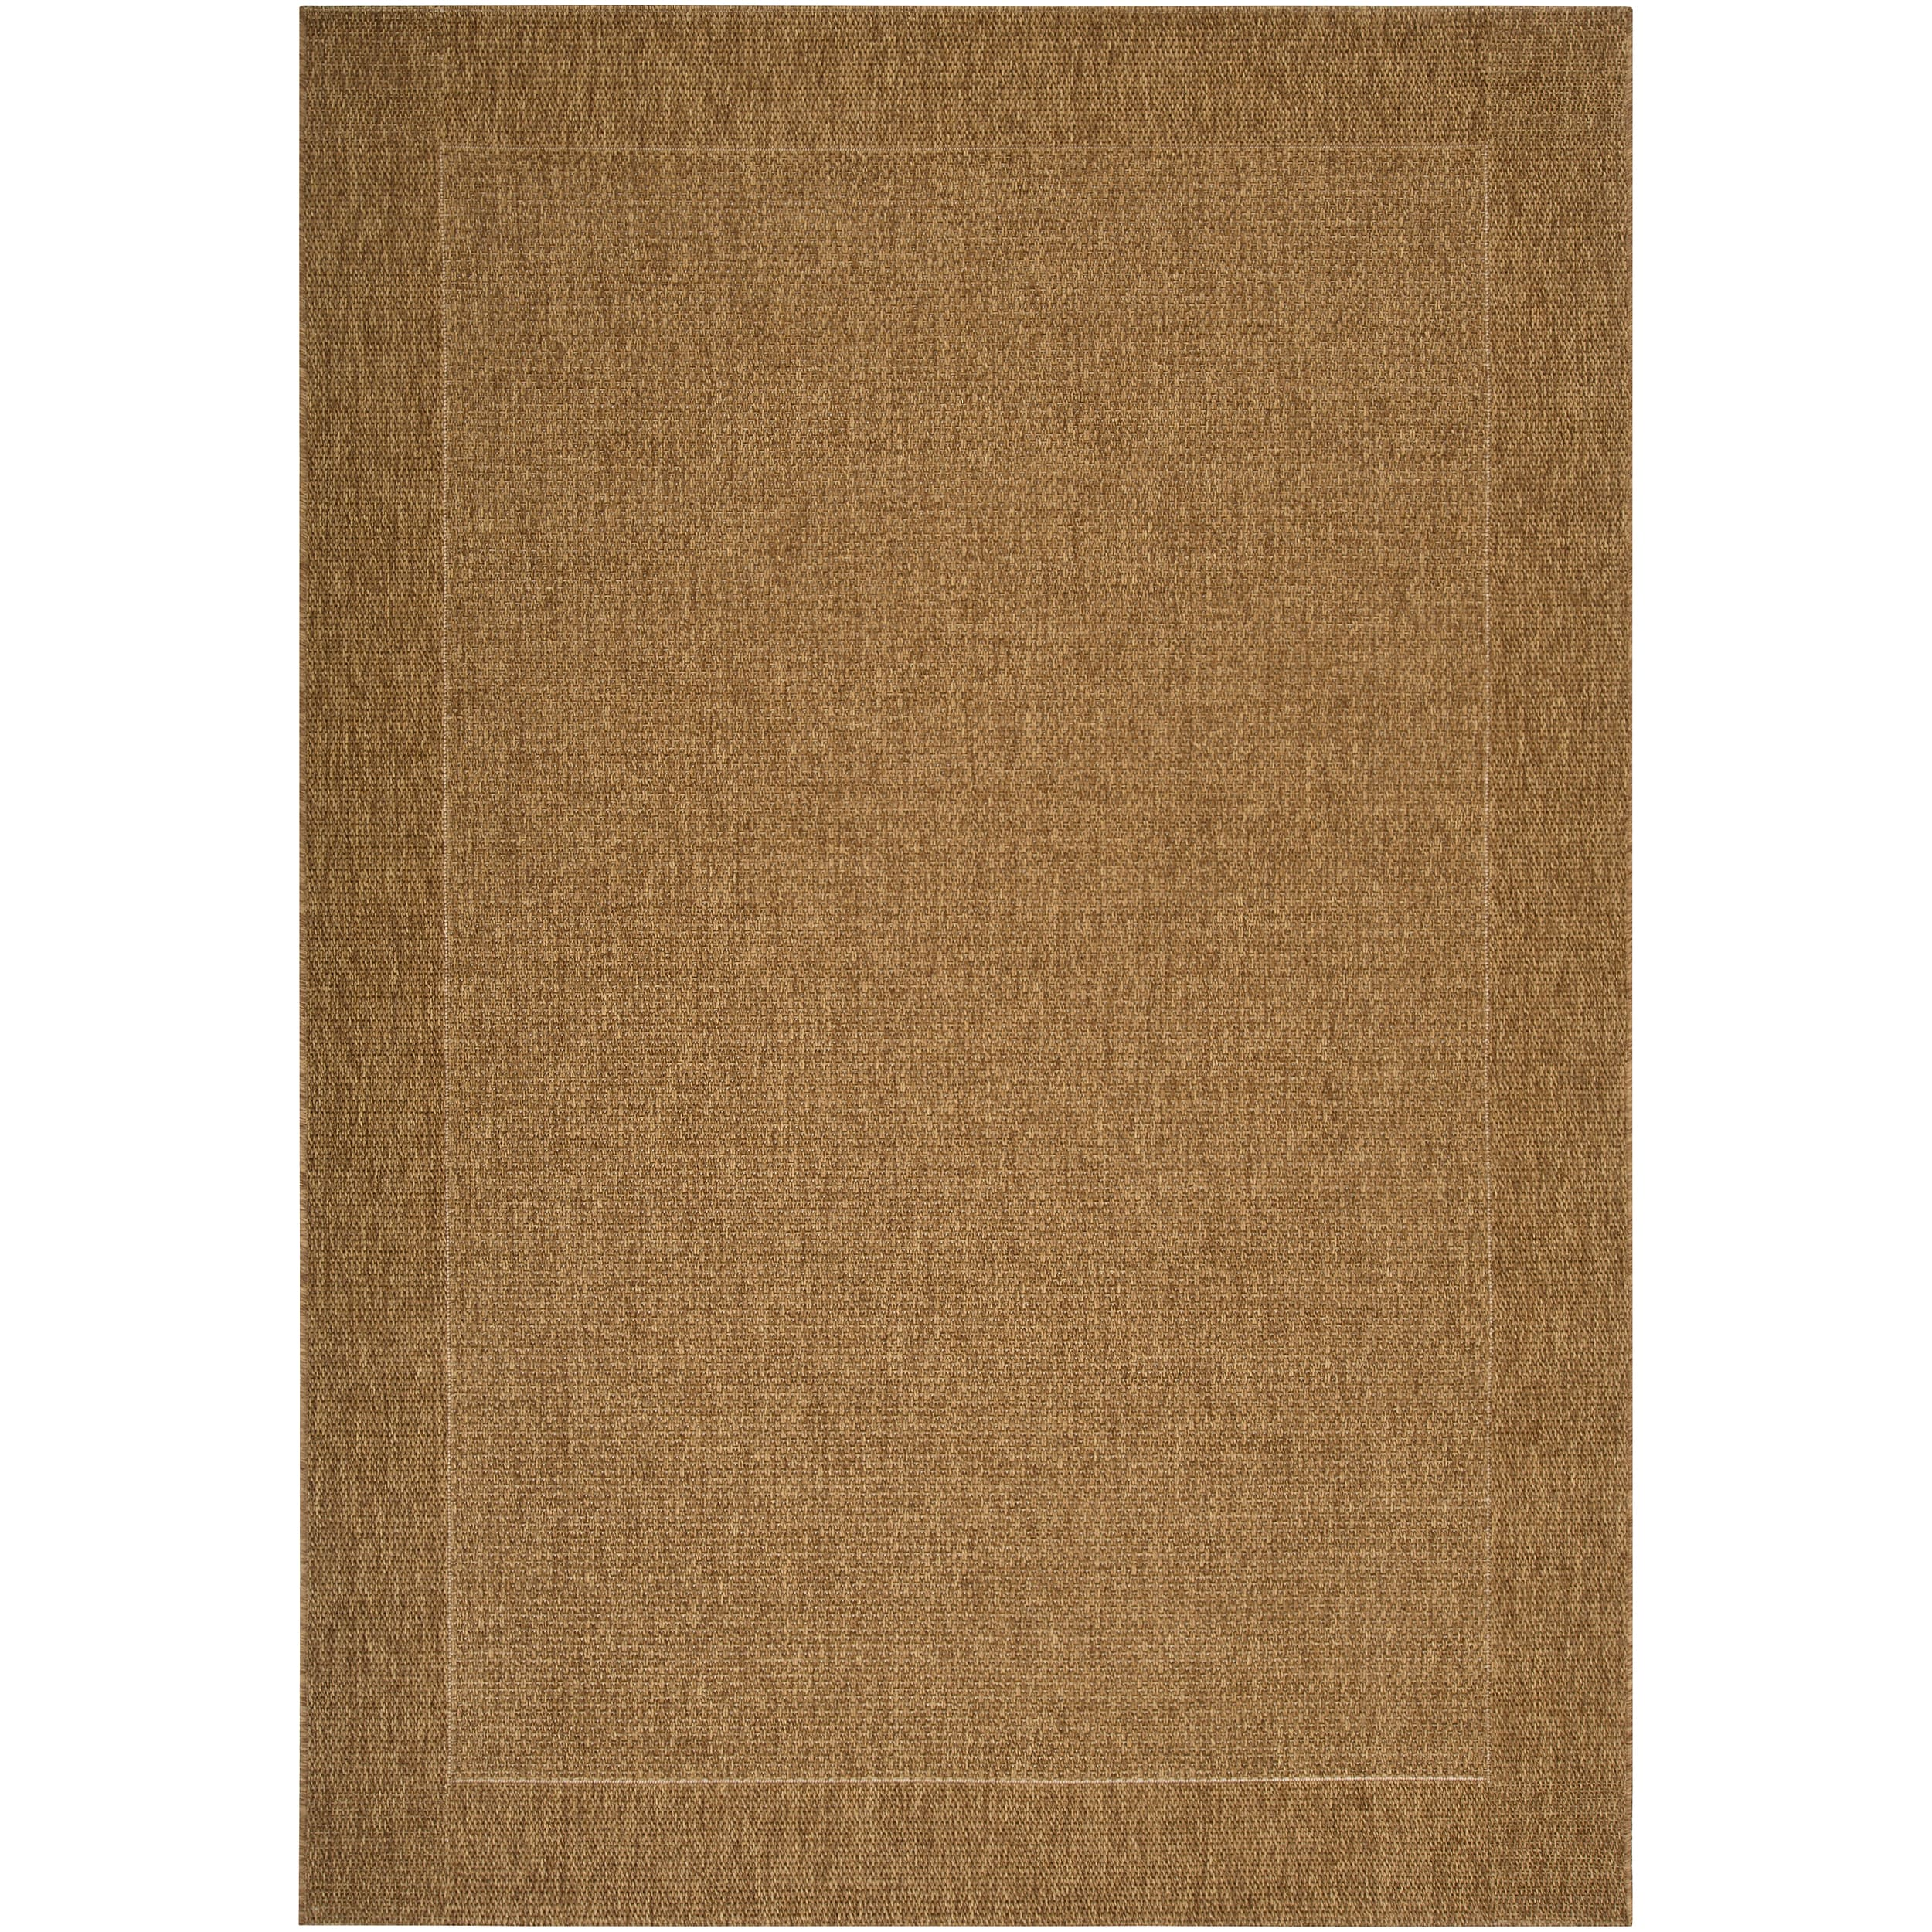 Woven Tan Akola Indoor/Outdoor Border Rug (5'3 x 7'6) - Thumbnail 0